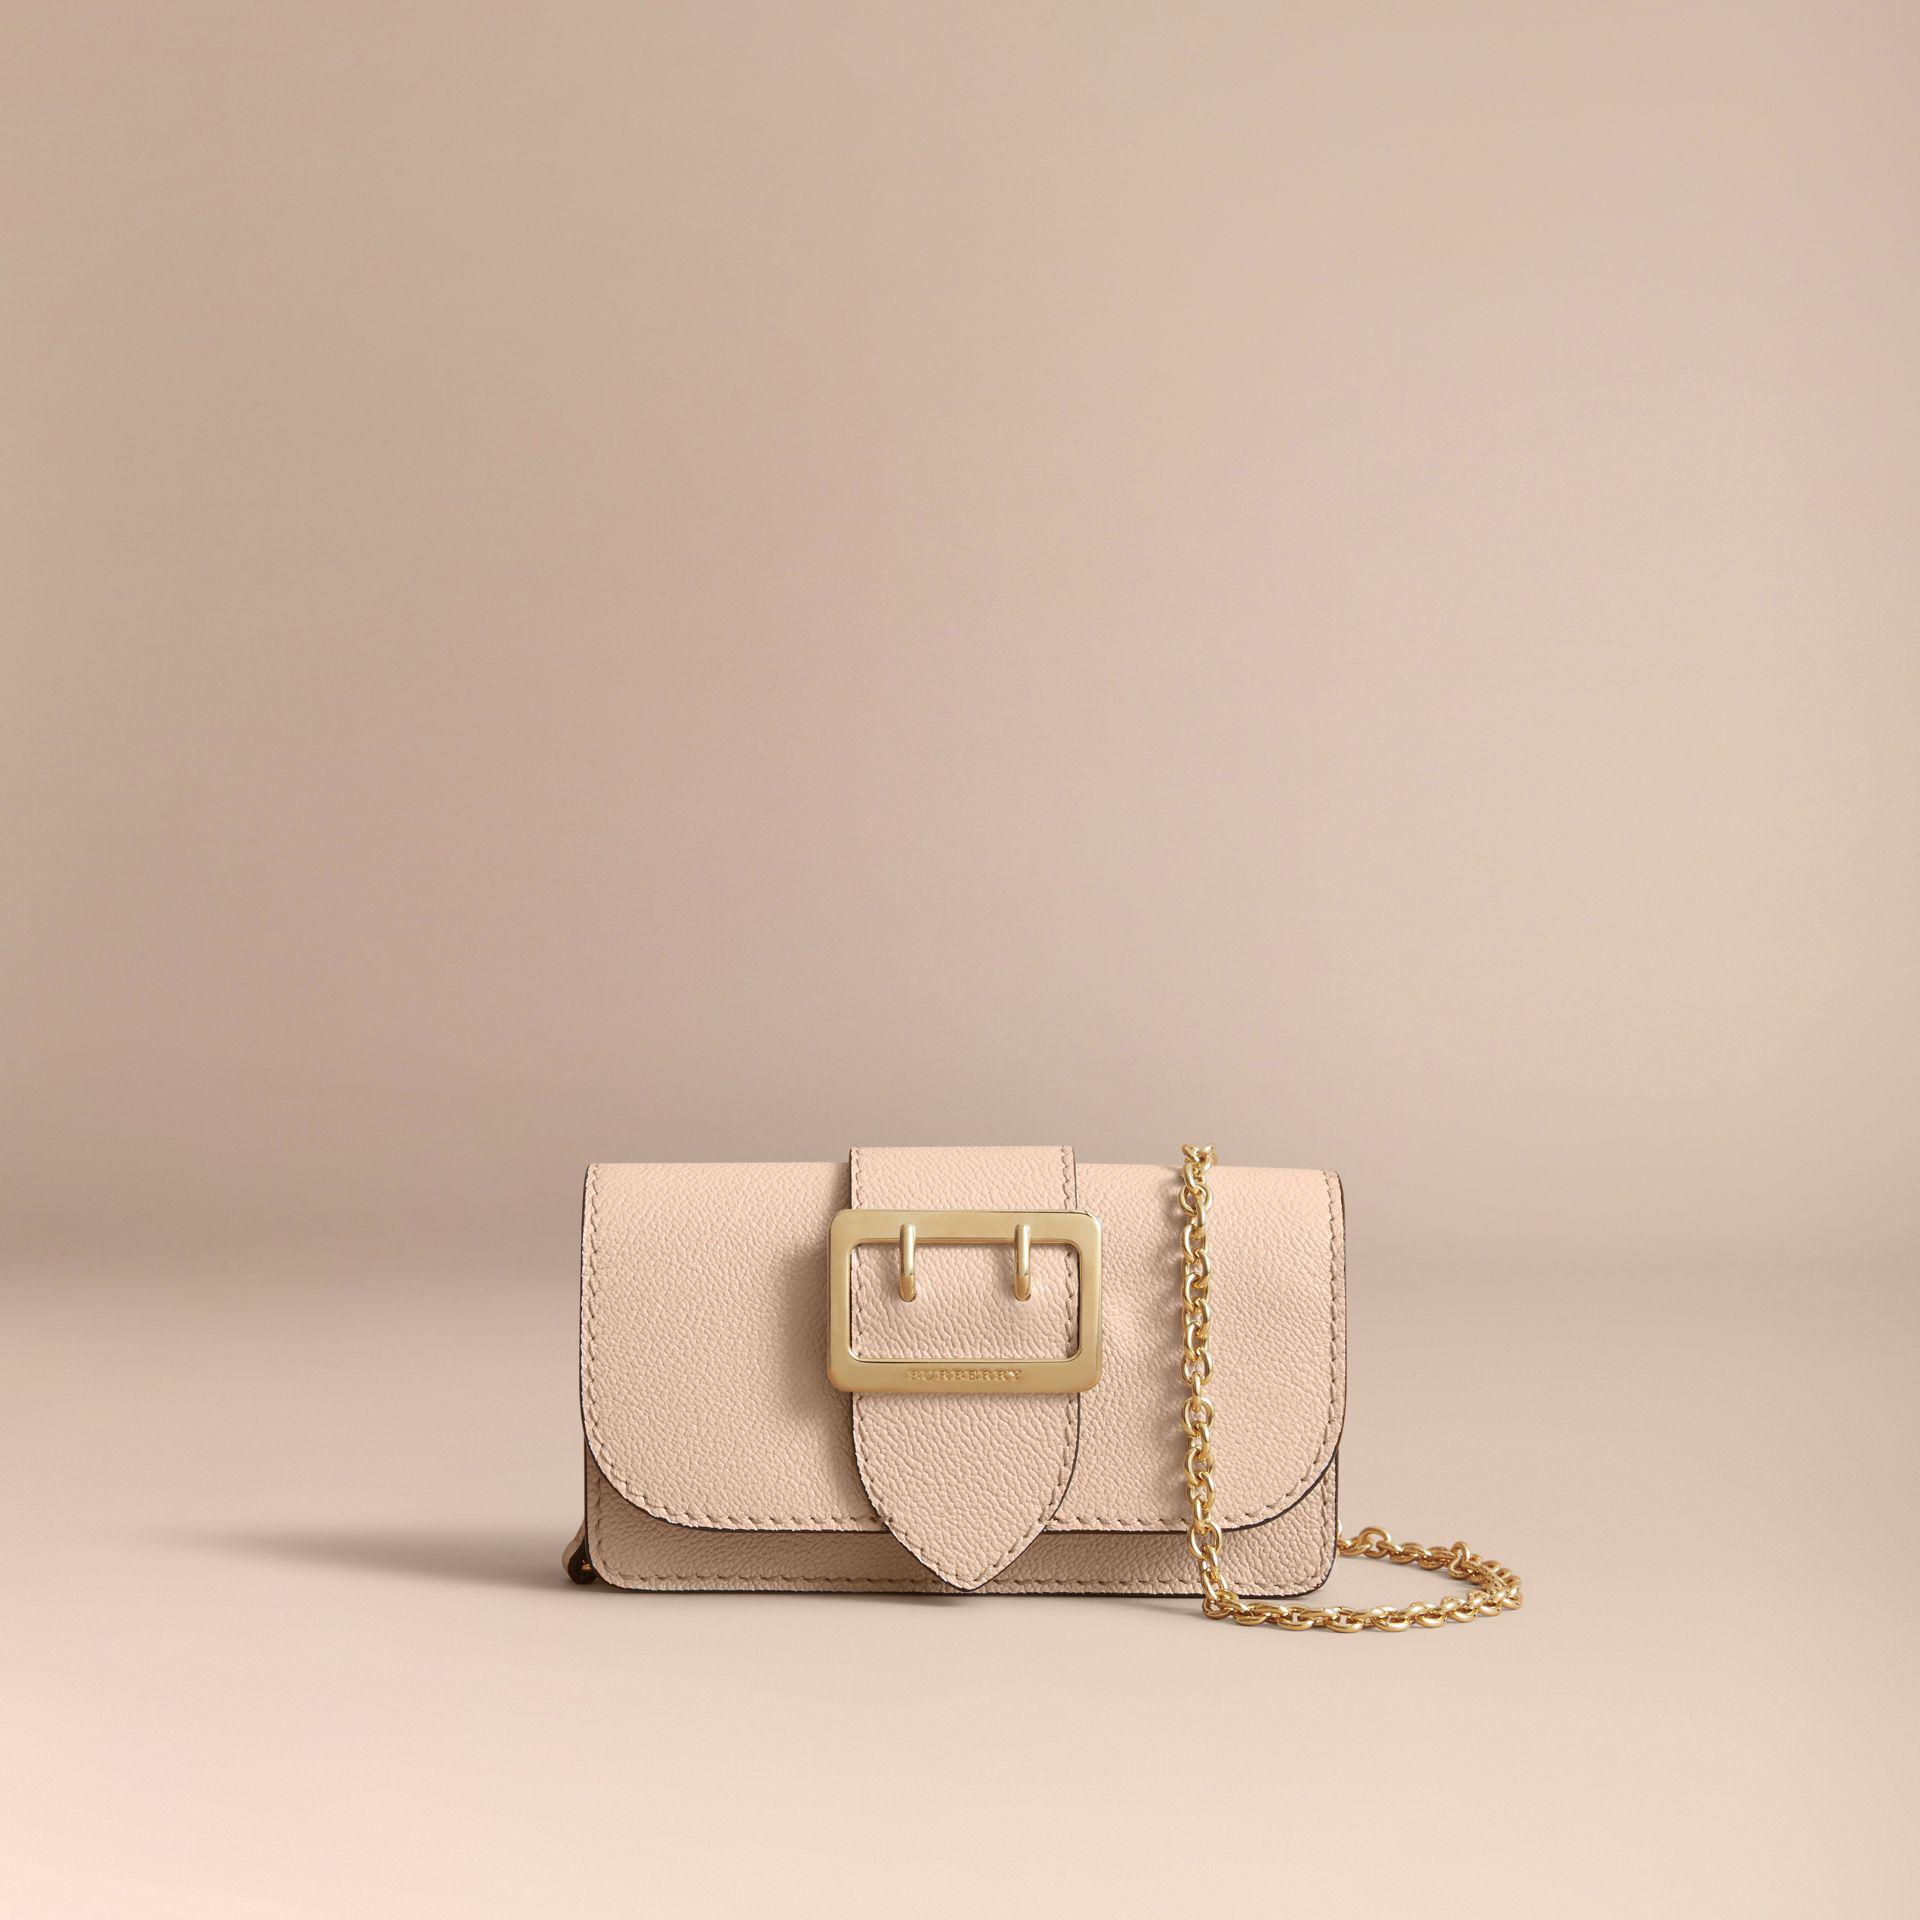 1d2b1081de Burberry The Mini Buckle Bag In Grainy Leather Limestone - Lyst